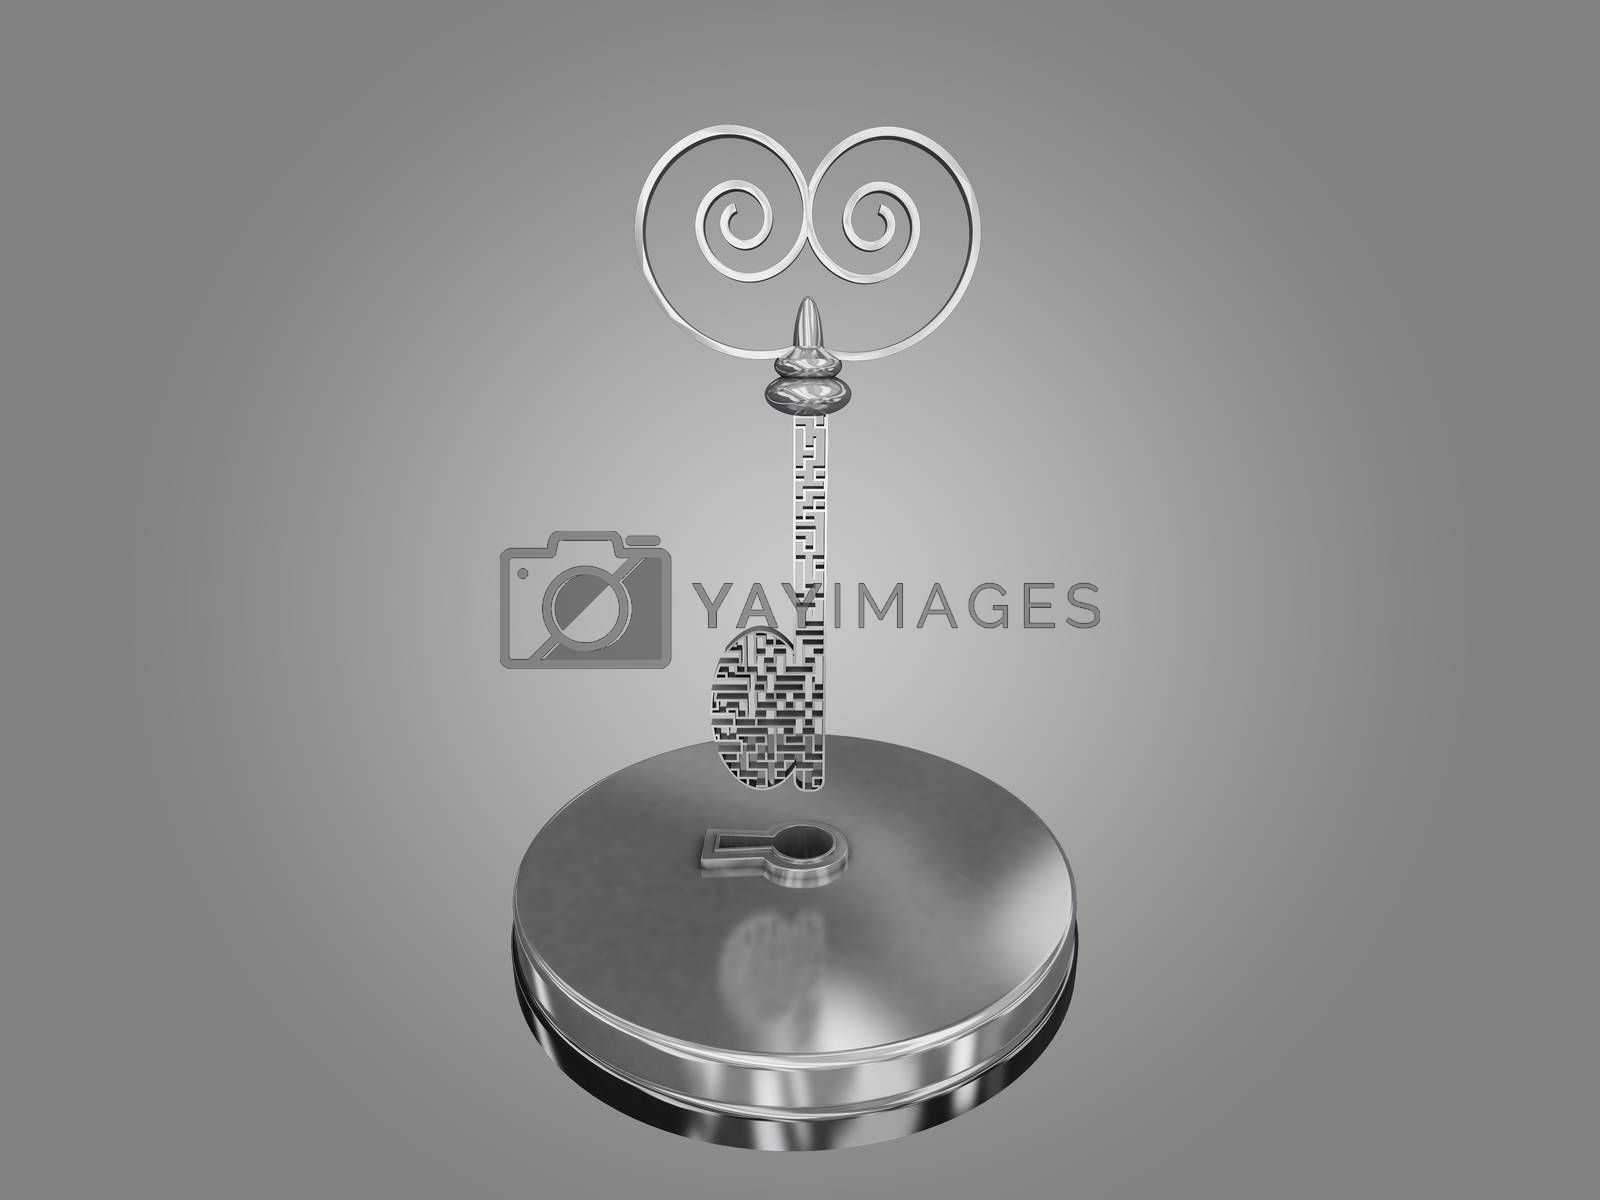 Royalty free image of The key is a maze, on a gray gradient background. by teerawit